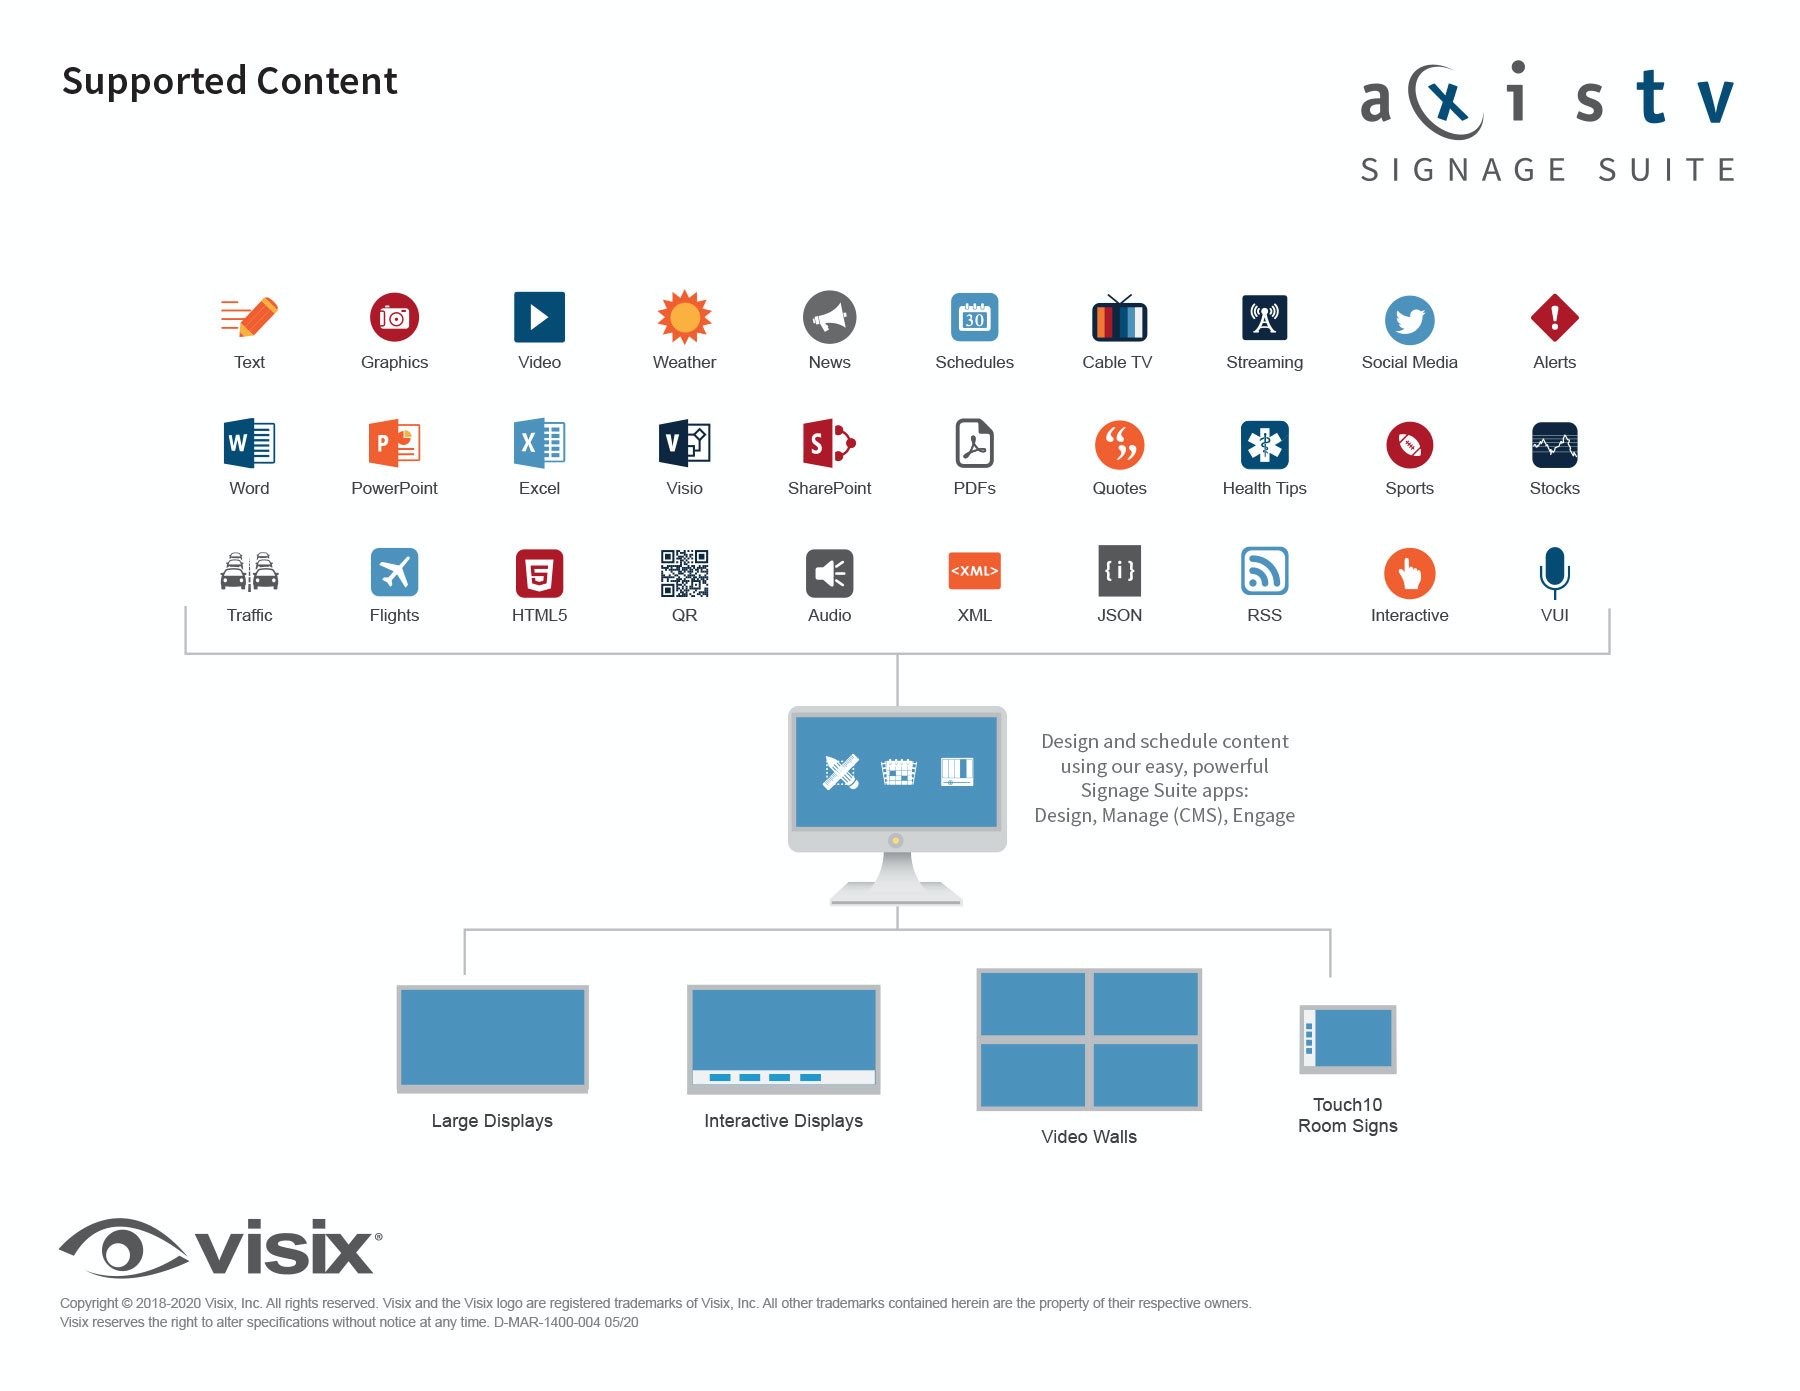 AxisTV Signage Suite gives you a vast array of content sources, smart playlists, and flexible scheduling to attract viewers, connect people and drive results. Publish unified communications across your organization from a any web-connected device.